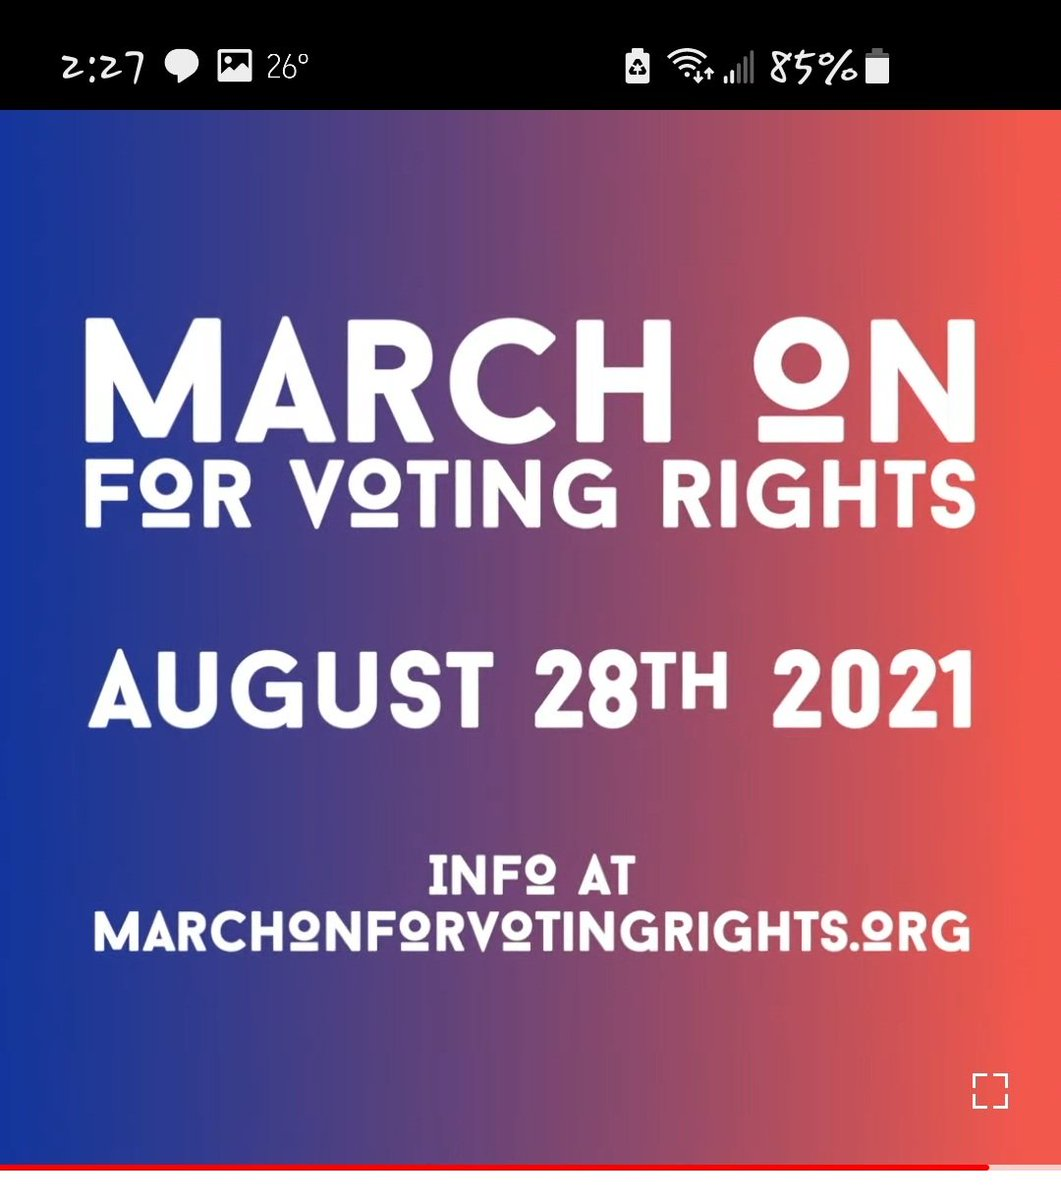 It's time America! Spread this far and wide! IT'S TIME to MARCH ON WASHINGTON FOR VOTER RIGHTS!  DEMOCRACY NEEDS EACH PERSON TO FIGHT FOR IT! #democracy #VoterSuppression https://t.co/funyUUeVQl https://t.co/eJkyxHHdFF